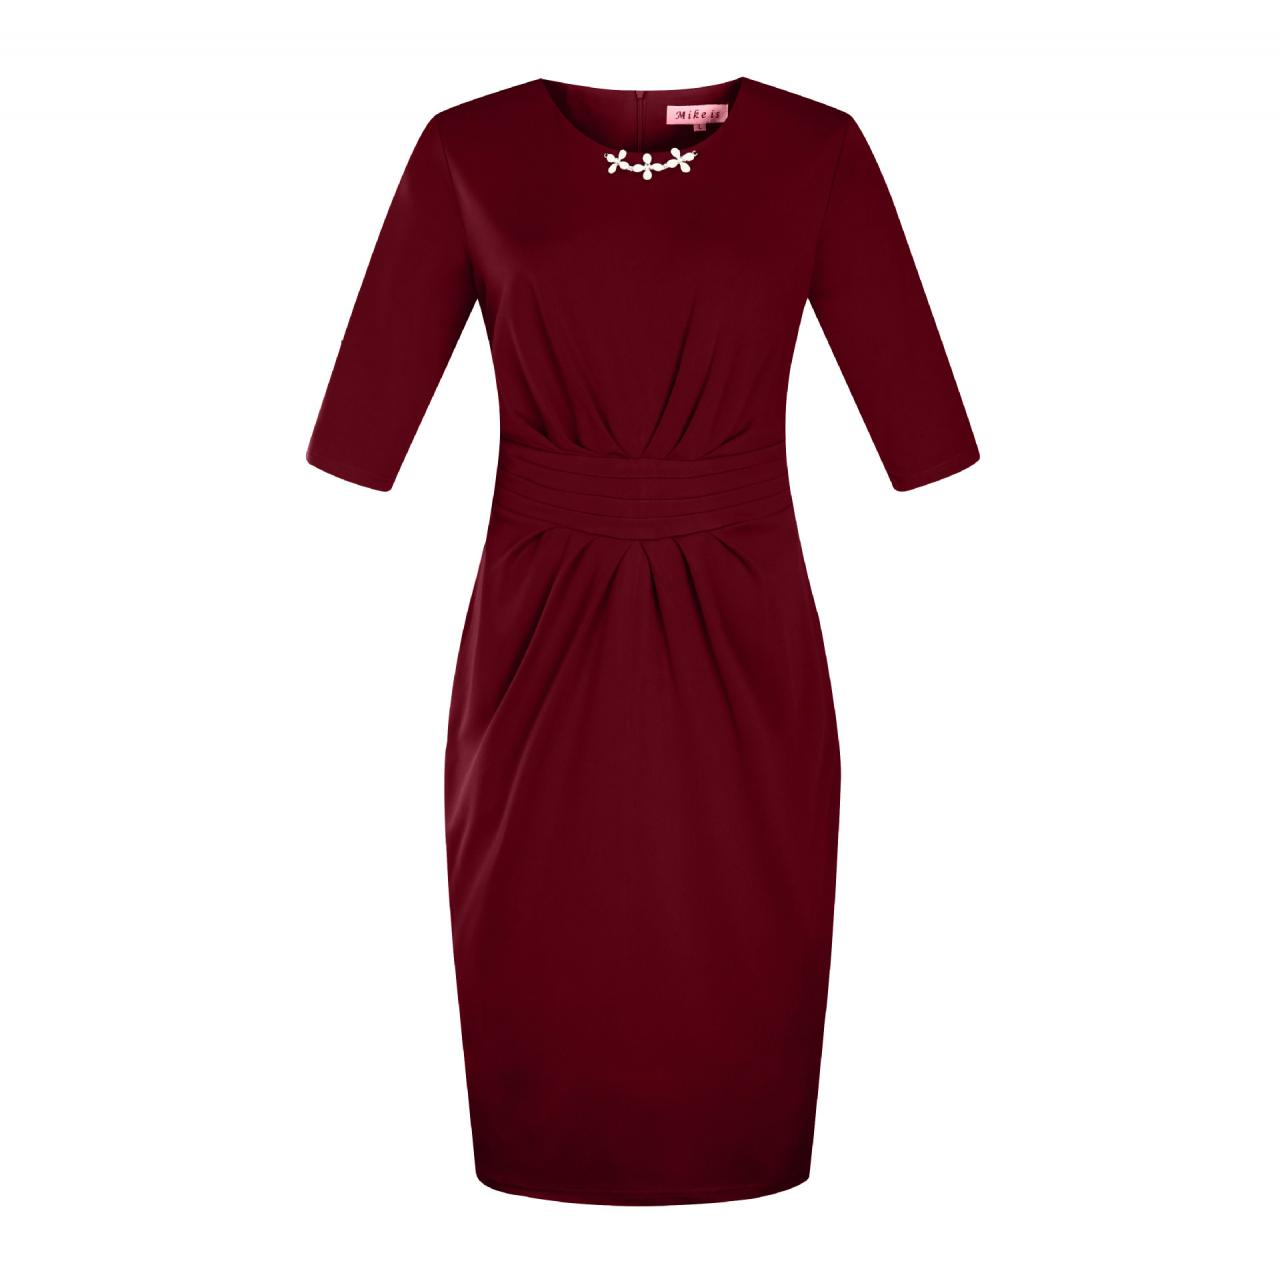 Women Plus Size Work Office Party Dress Half Sleeve Ruched Split Bodycon Pencil Dress burgundy